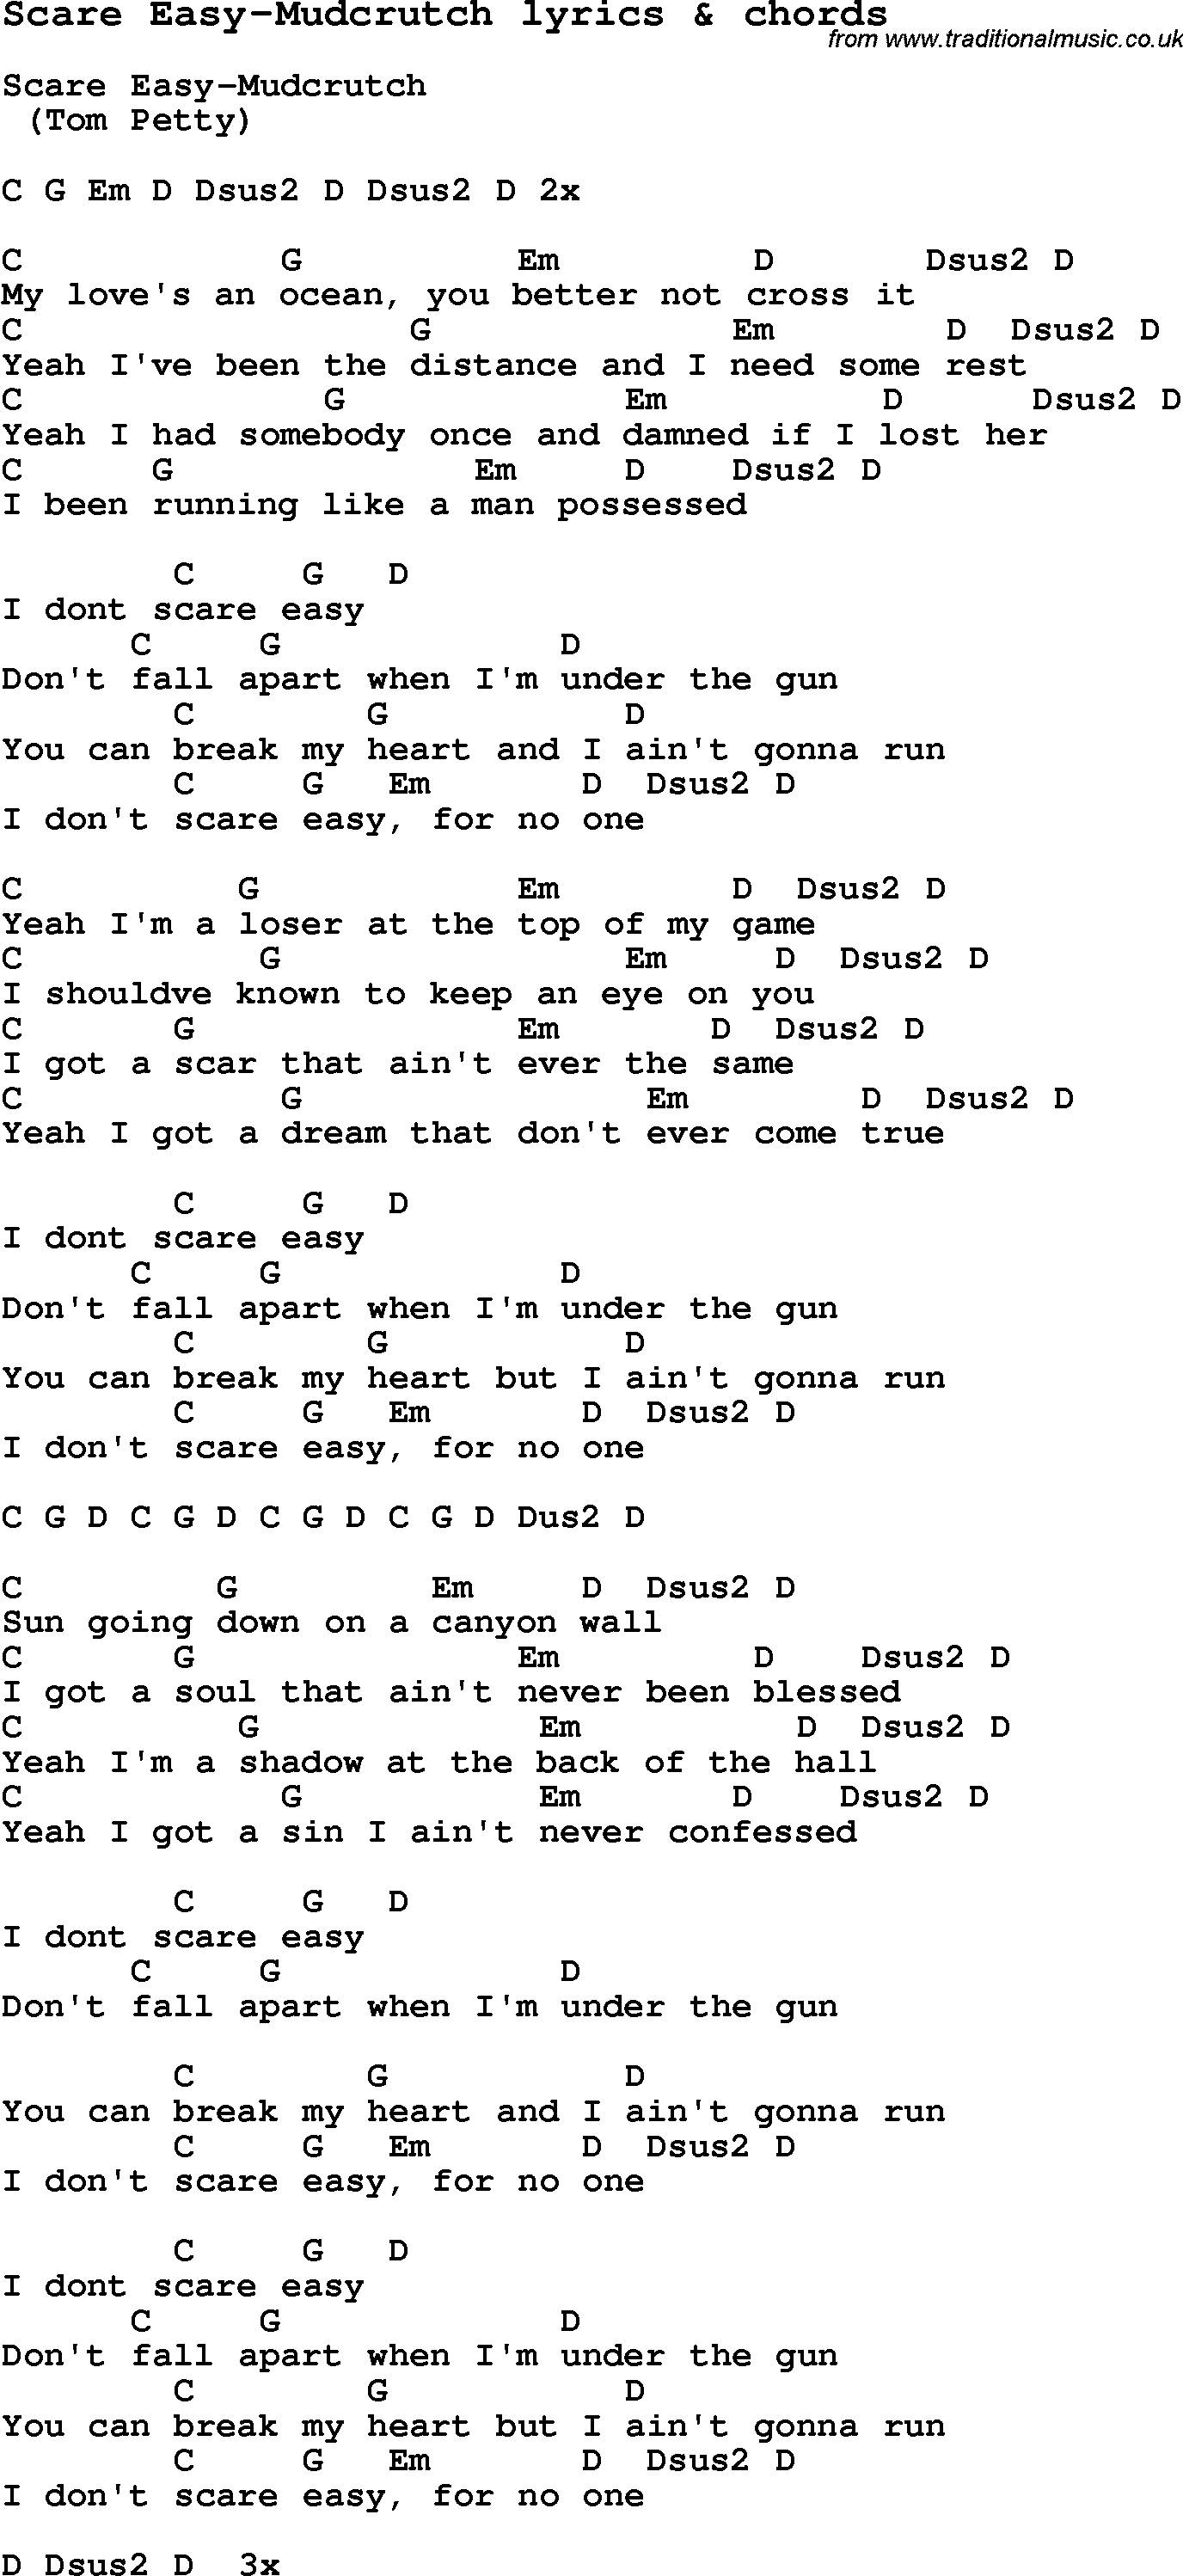 Love Song Lyrics For Scare Easy Mudcrutch With Chords For Ukulele